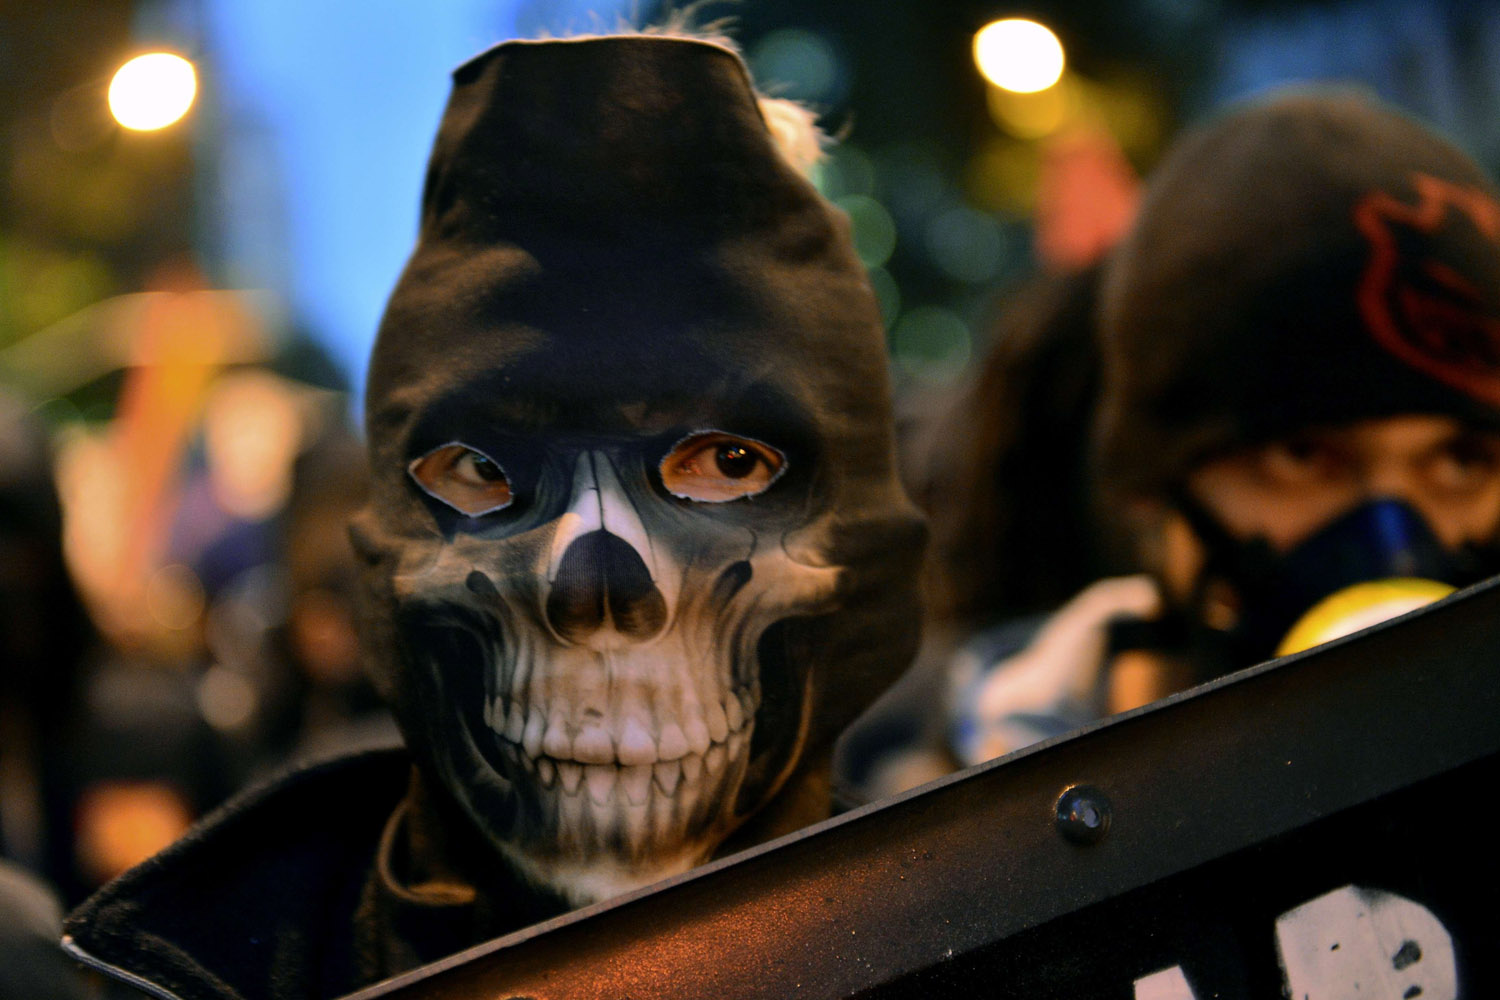 Oct. 7, 2013. A demonstrator marches during a teachers protest demanding better working conditions and against police beating in Rio de Janeiro.